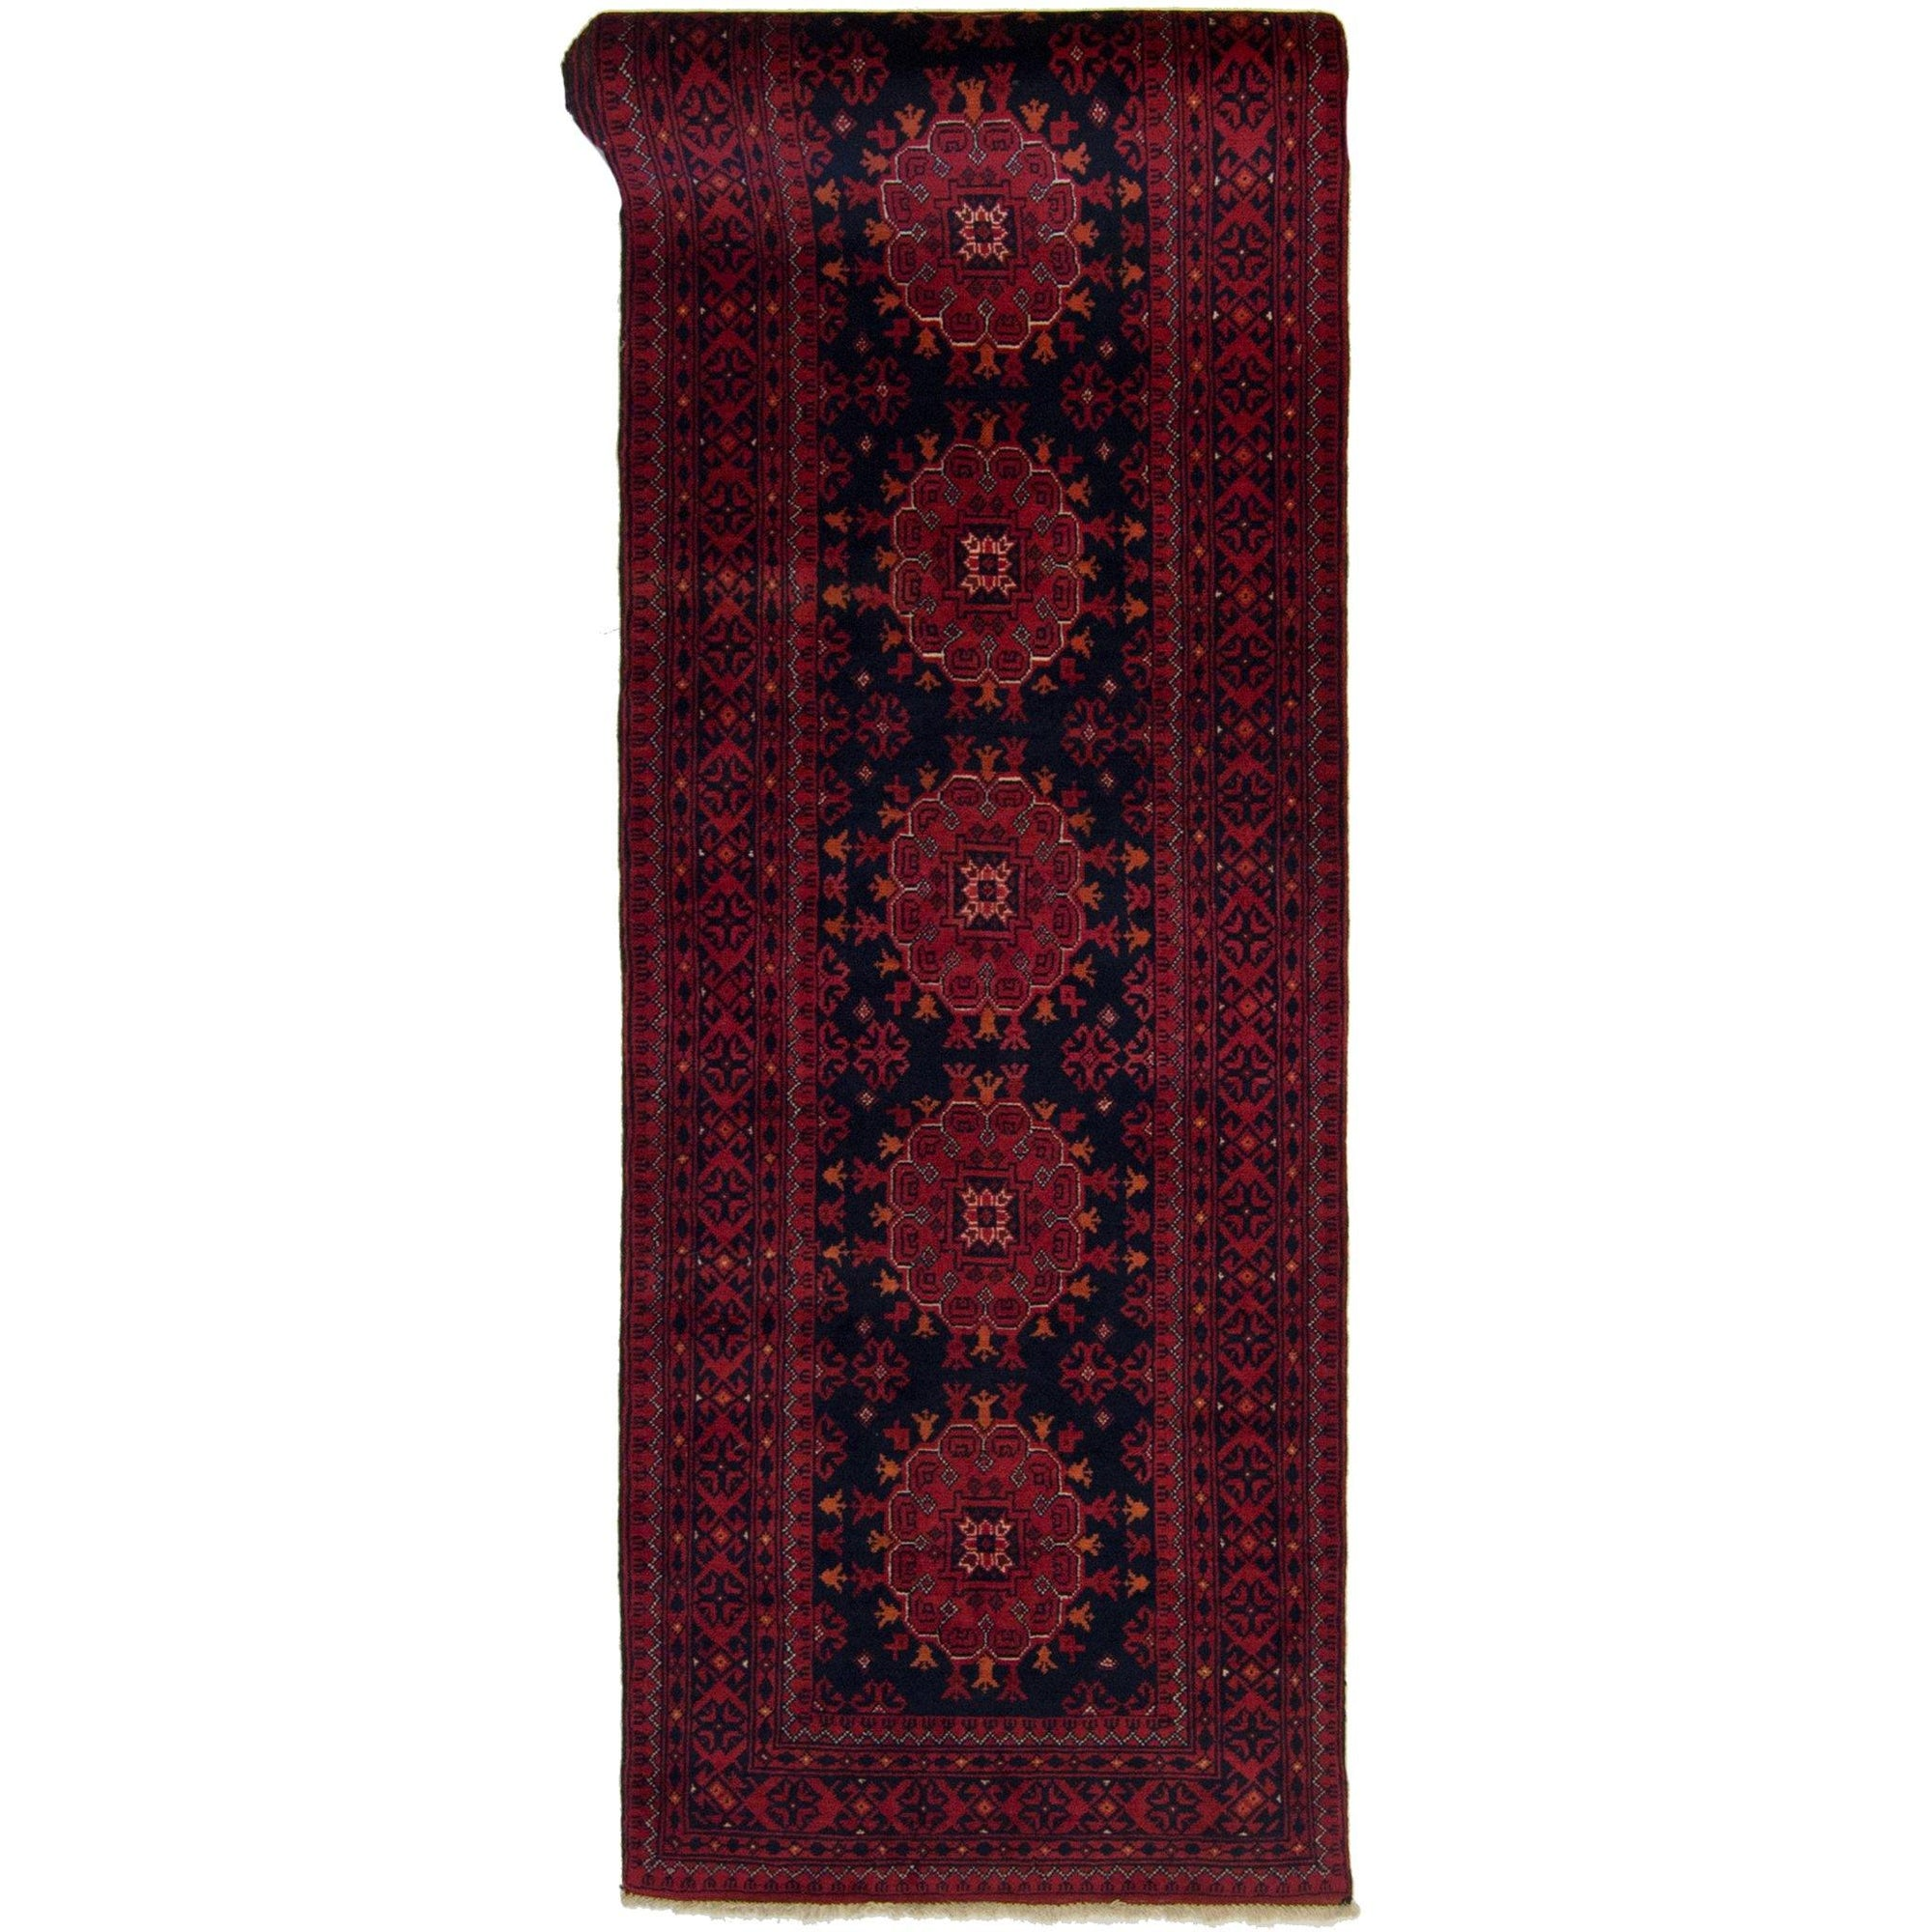 Hand-knotted 100% Wool Khal Mohammadi Runner 73cm x 3.4cm Persian-Rug | House-of-Haghi | NewMarket | Auckland | NZ | Handmade Persian Rugs | Hand Knotted Persian Rugs